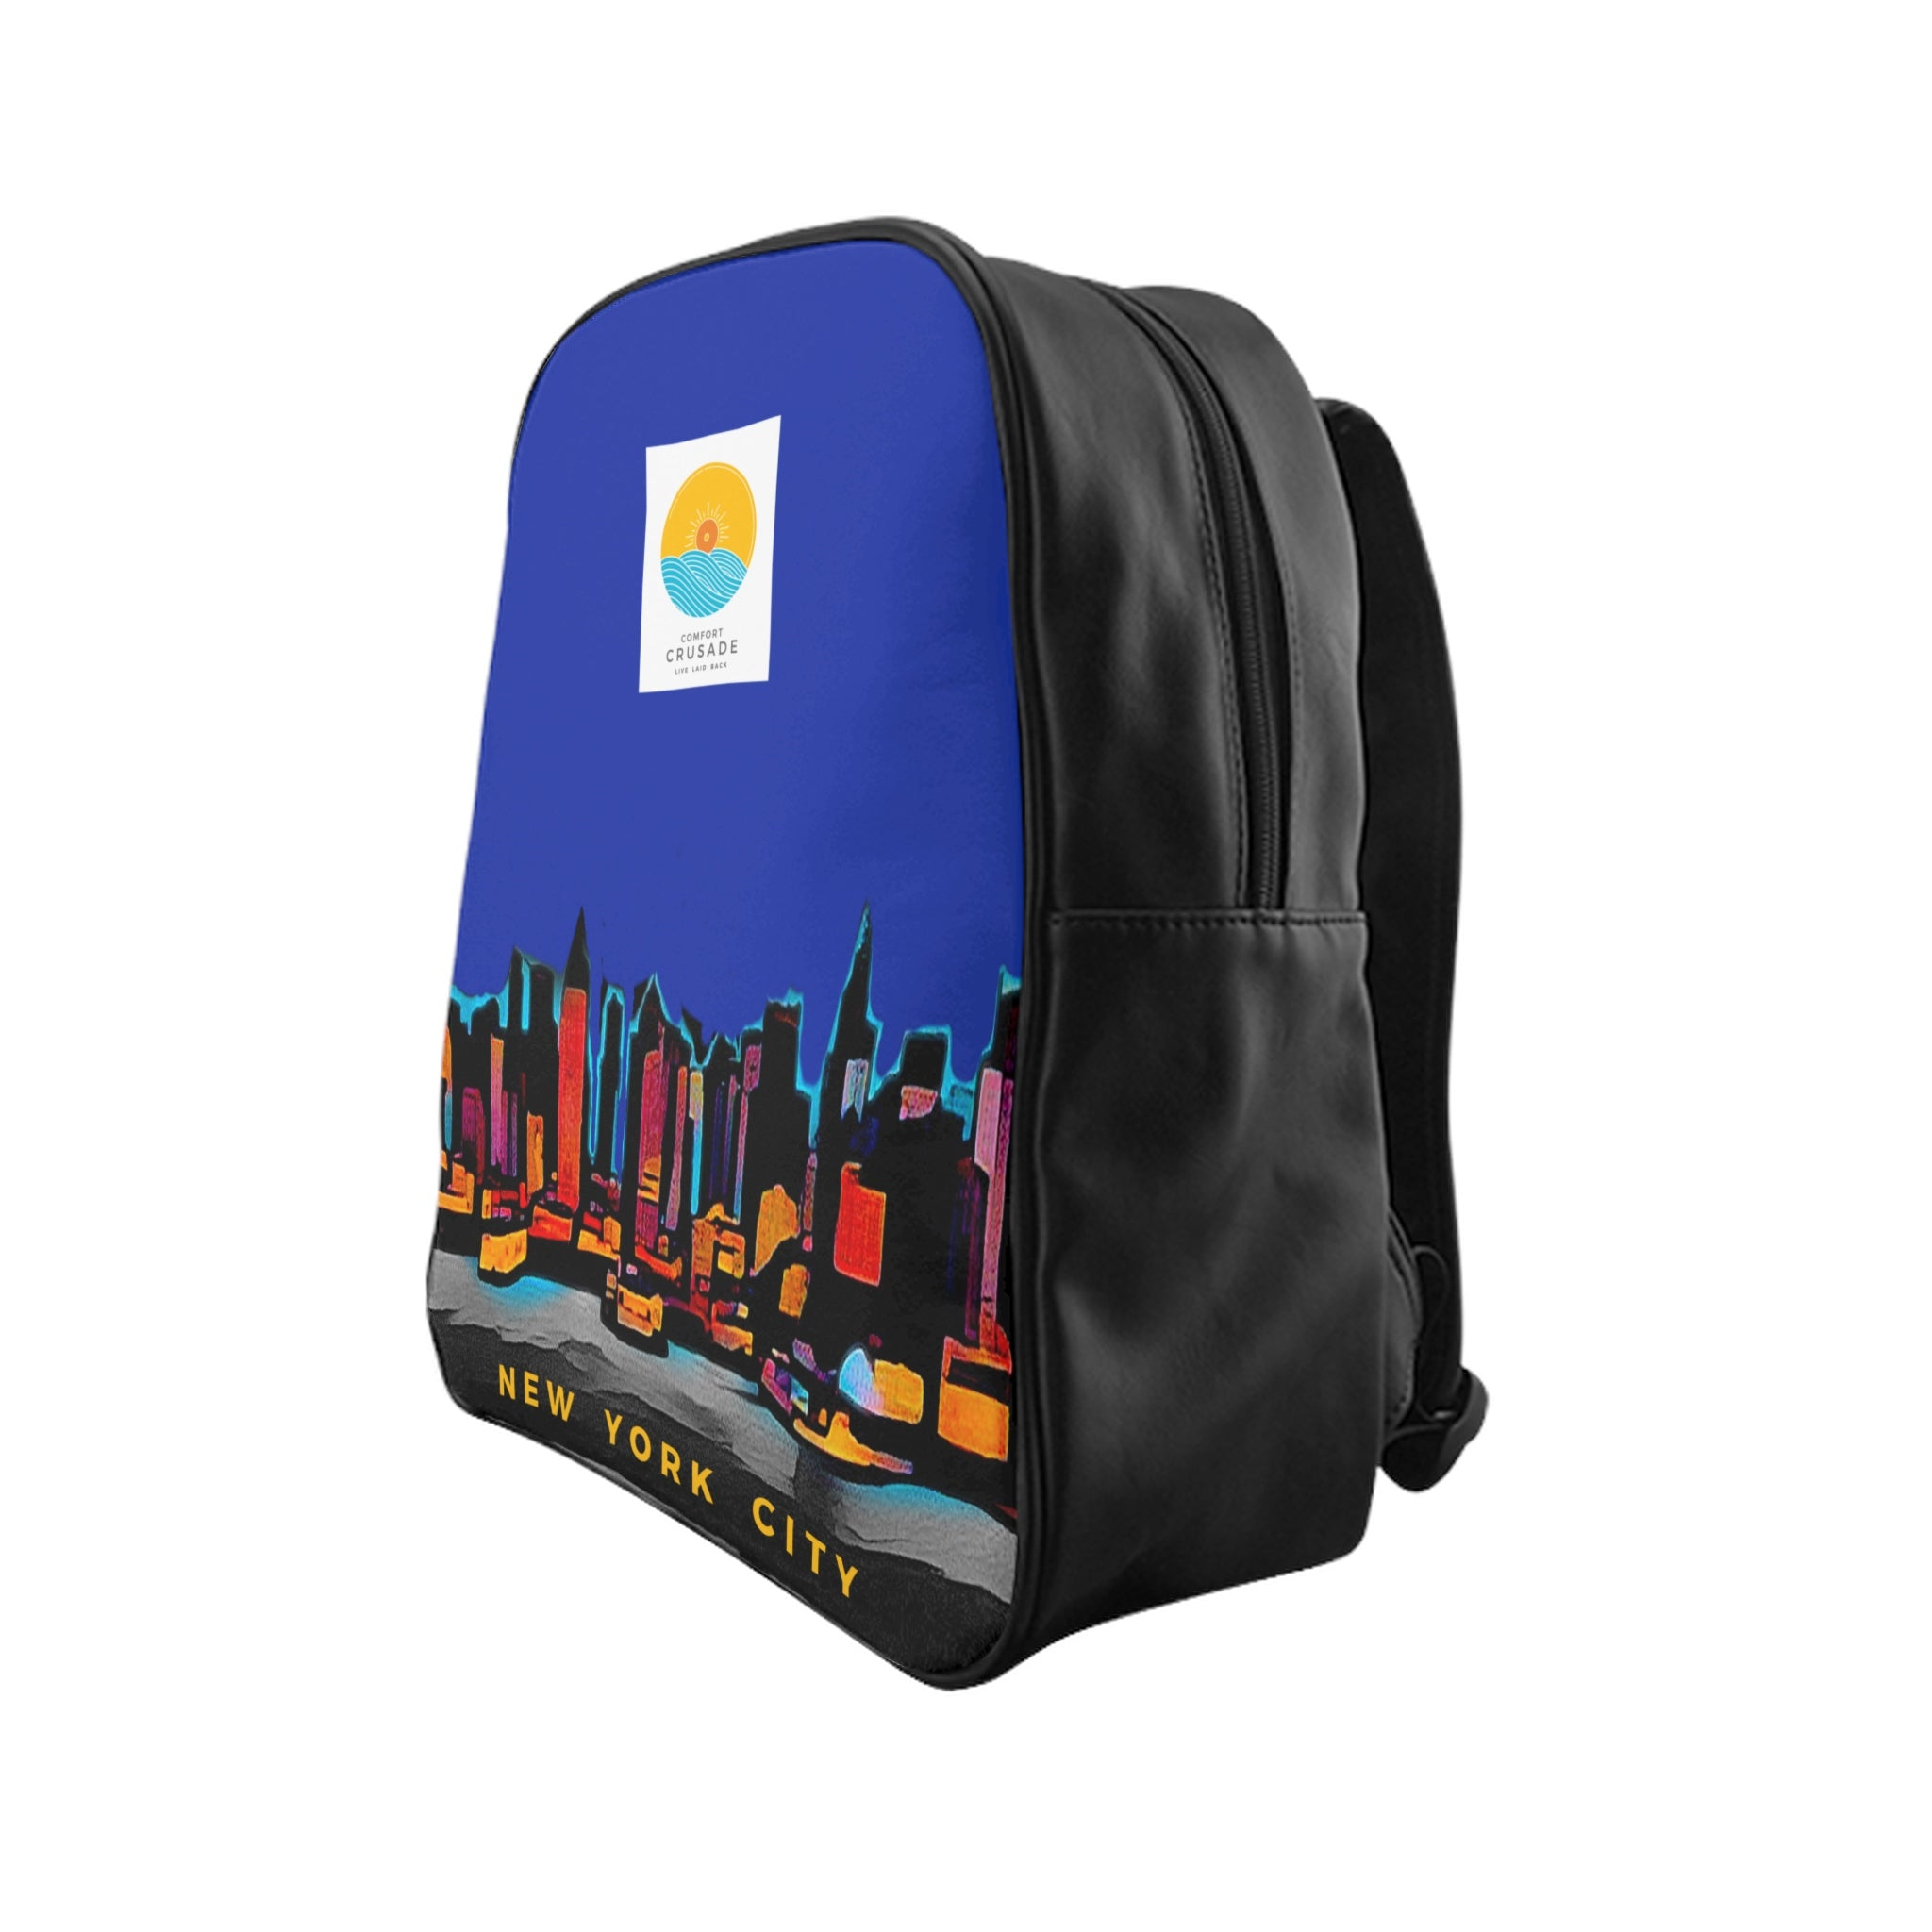 NY Sky Twilight Lounge Backpack - The Comfort Crusade Shopping Lounge